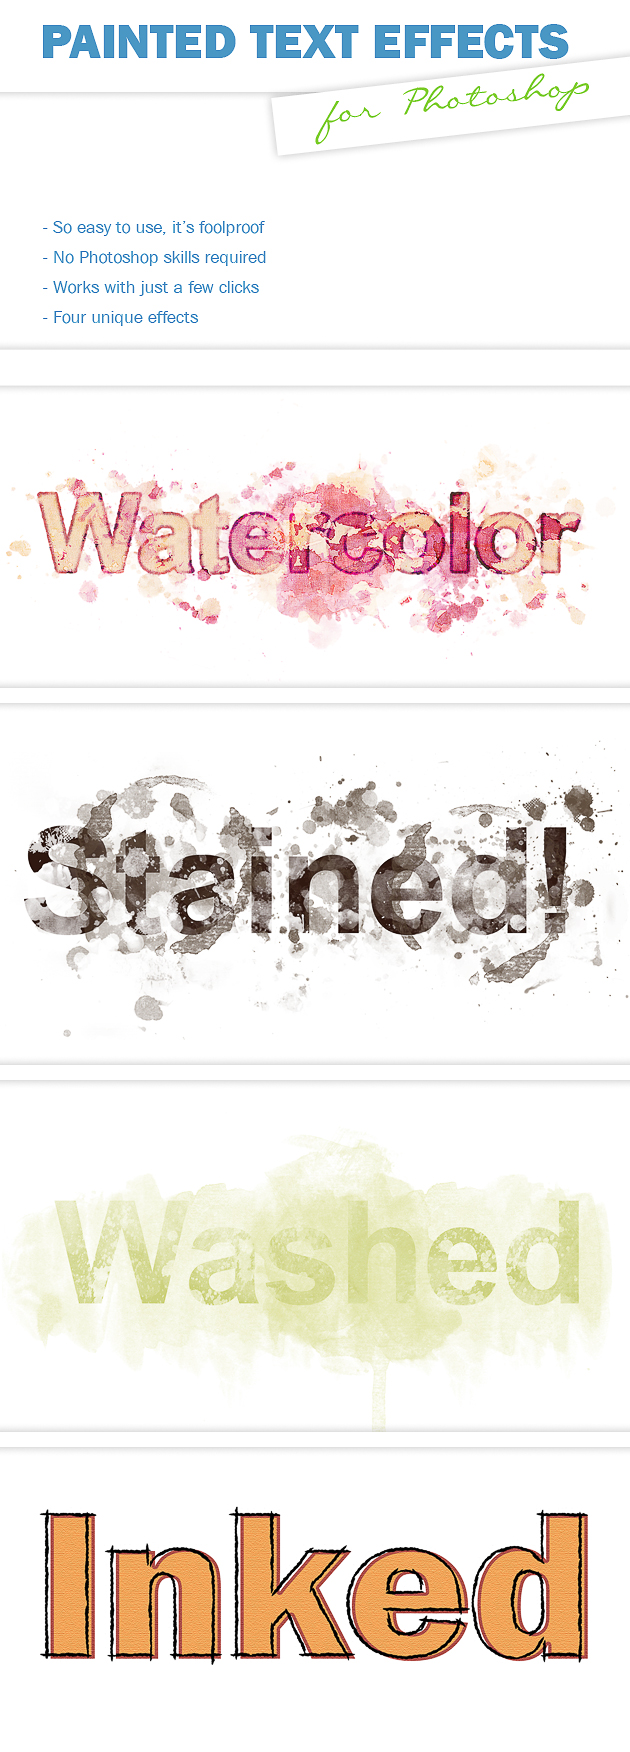 Painted-Text-Effect-PS-Actions designtnt painted text effects large